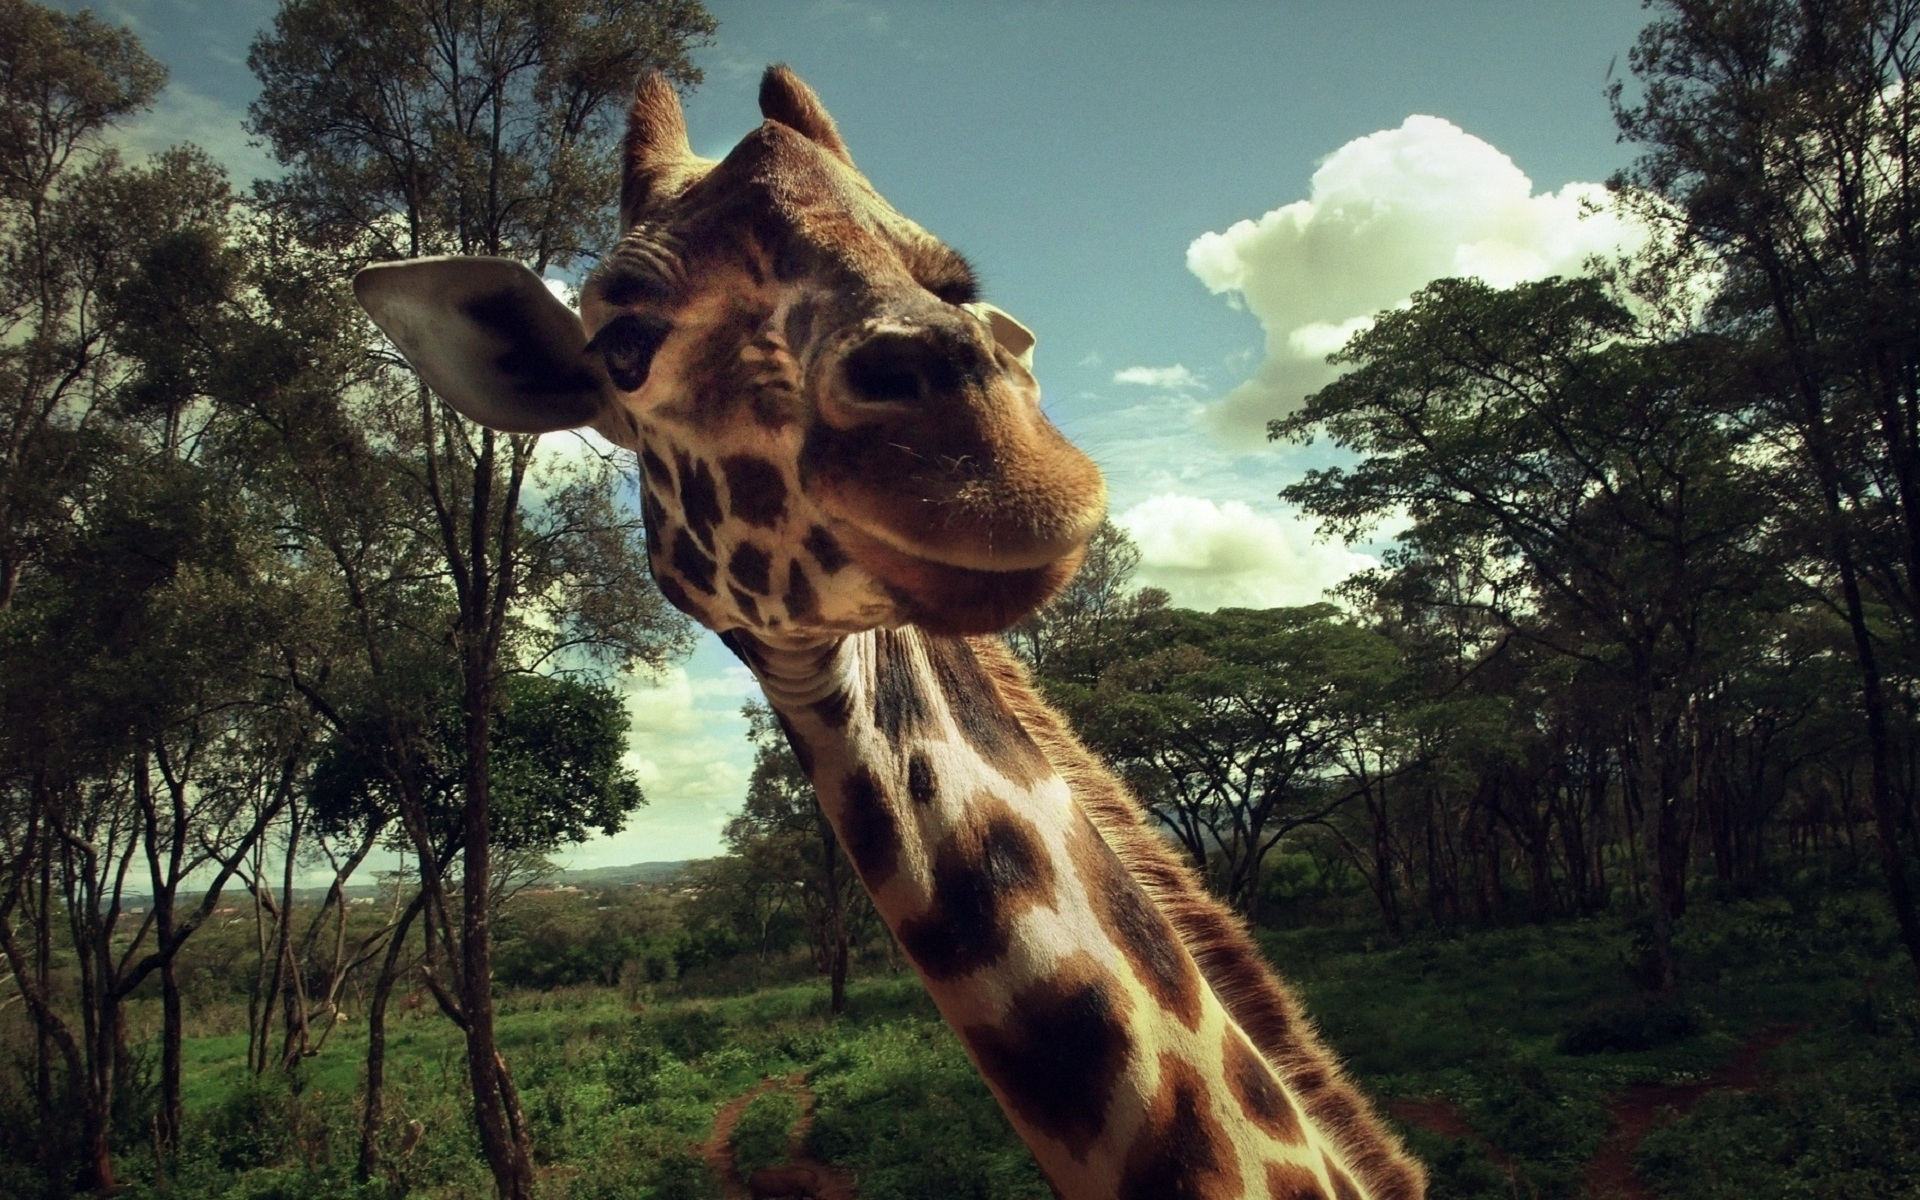 40792 download wallpaper Animals, Giraffes screensavers and pictures for free